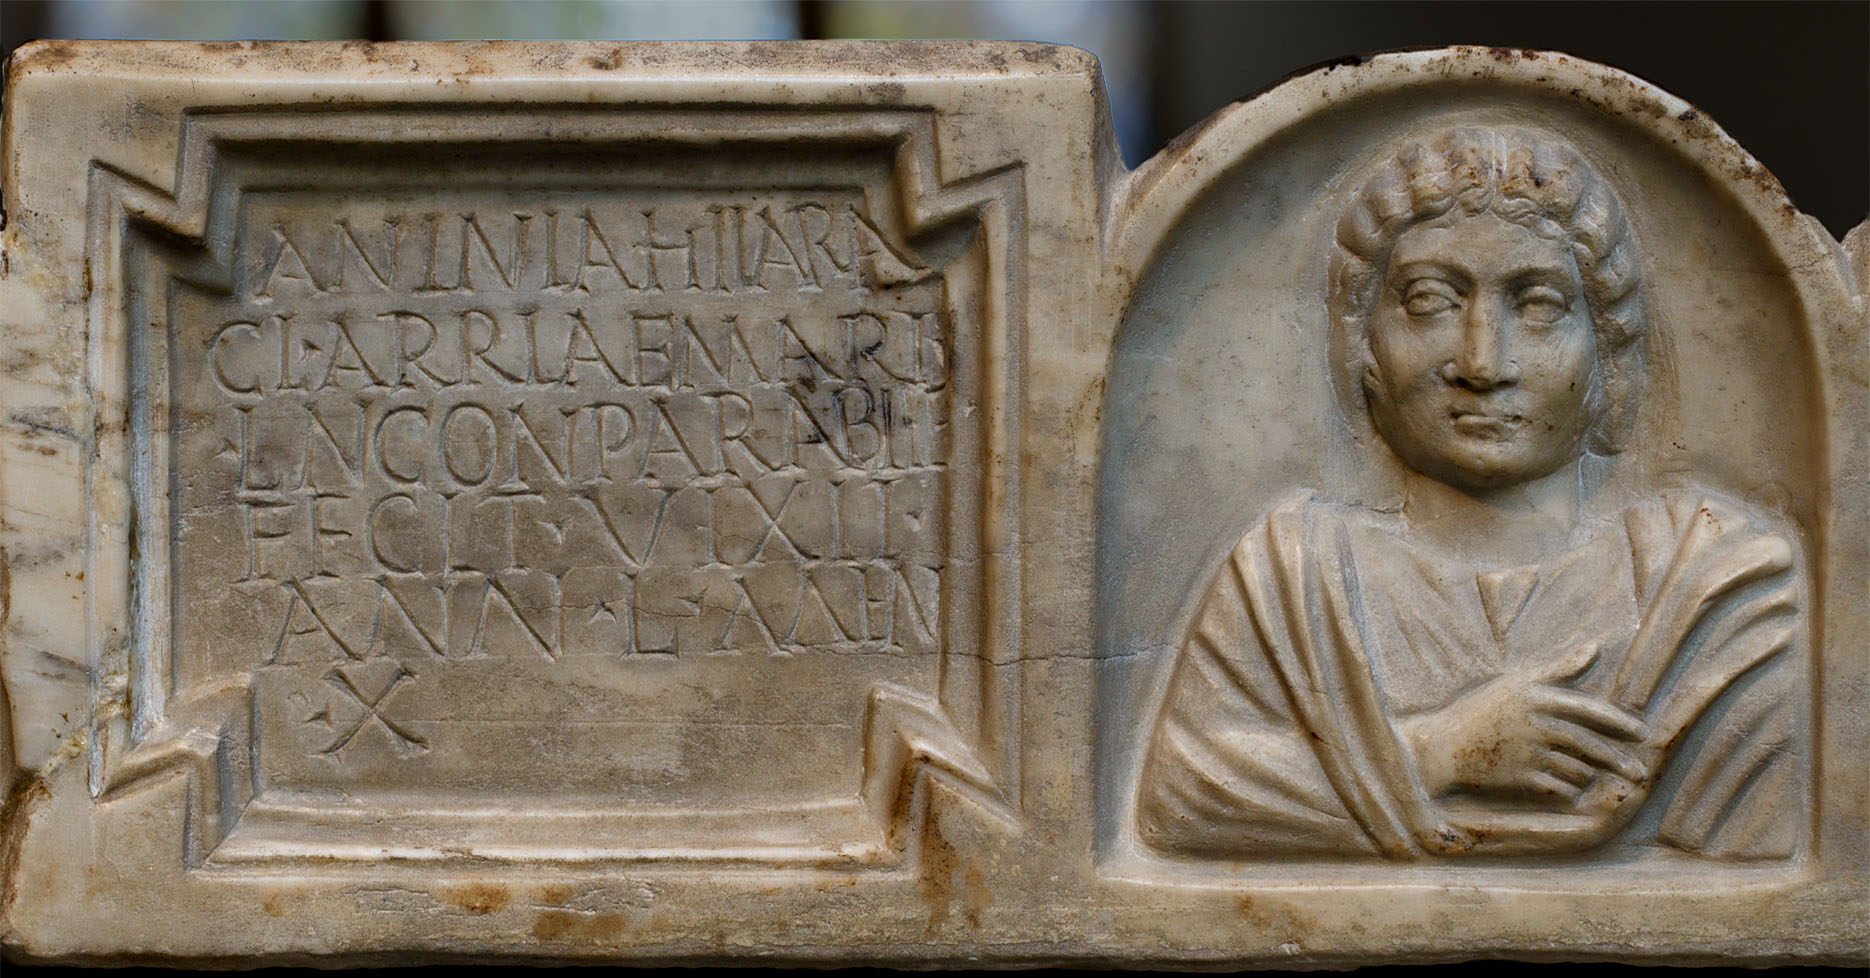 Sarcophagus with a myth of Selene and Endymion. The lid frieze: inscription and portrait of the deceased. Marble. Early 3rd cent. CE. Inv. No. 47.100.4b. New York, the Metropolitan Museum of Art